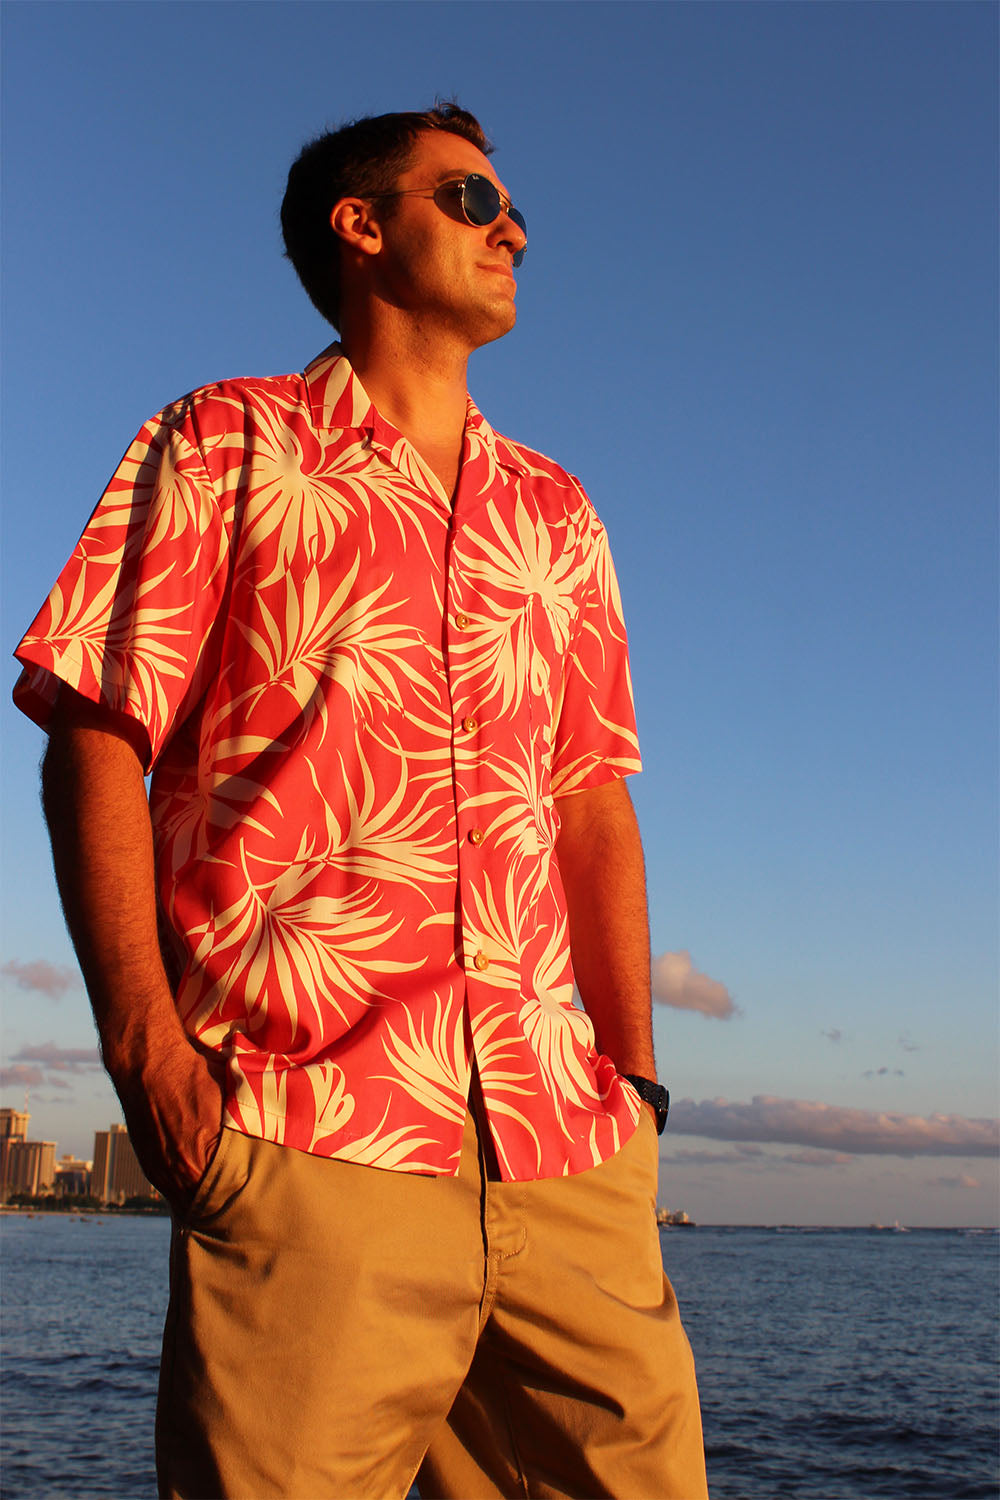 watching a sunset in rayon Hawaiian shirt